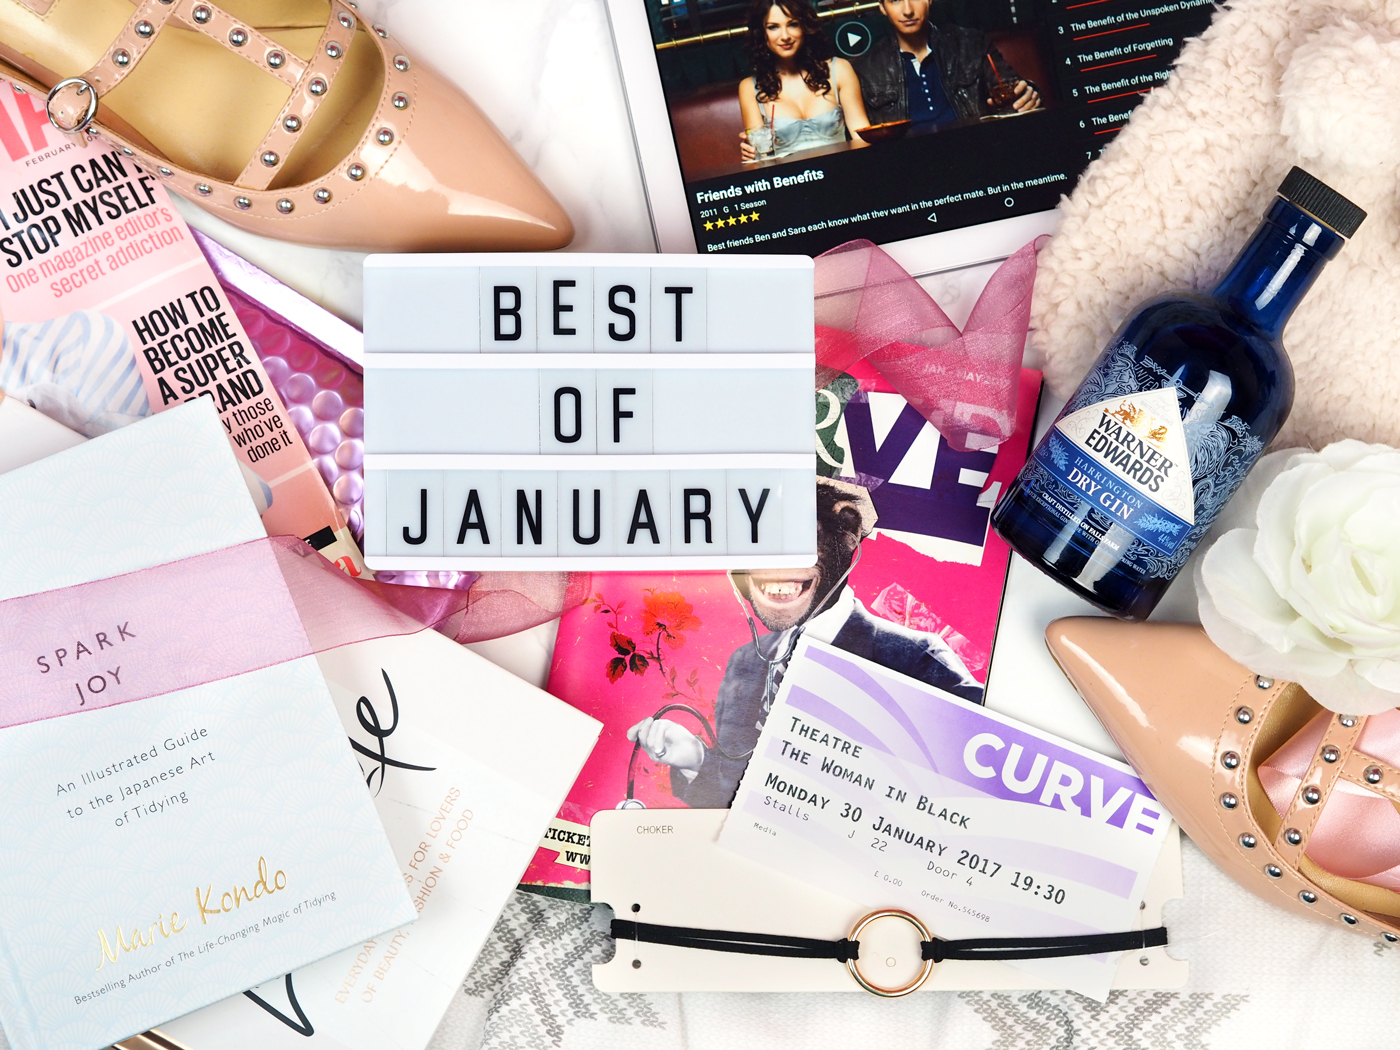 Best Bits of January flatlay lifestyle favourites